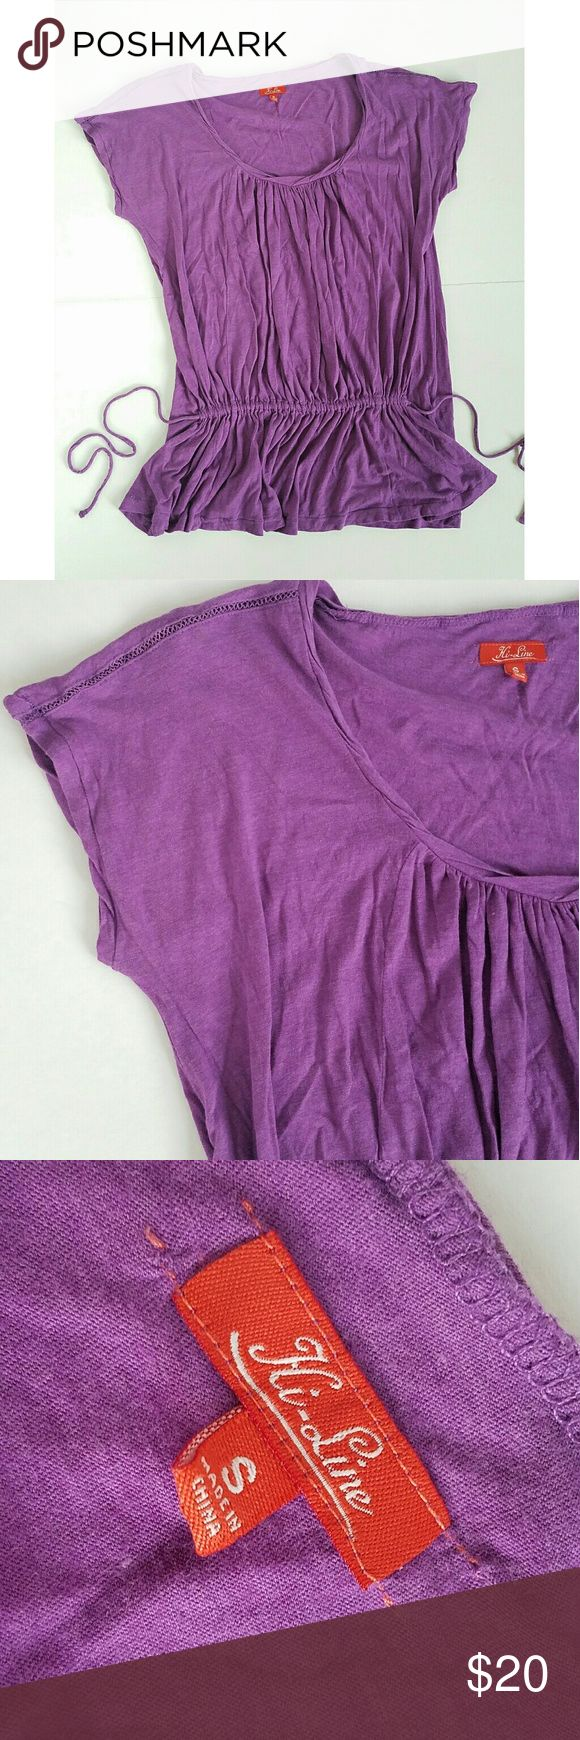 Madewell Purple Tie Waist Soft Tee Madewell Hi-Line purple tie waist tee. Size Small. Soft and lightweight. Relaxed fit.   Pre-owned condition with light signs of fading and piling from usual wash and wear.  Purple hue is slightly darker in person. Madewell Tops Tees - Short Sleeve